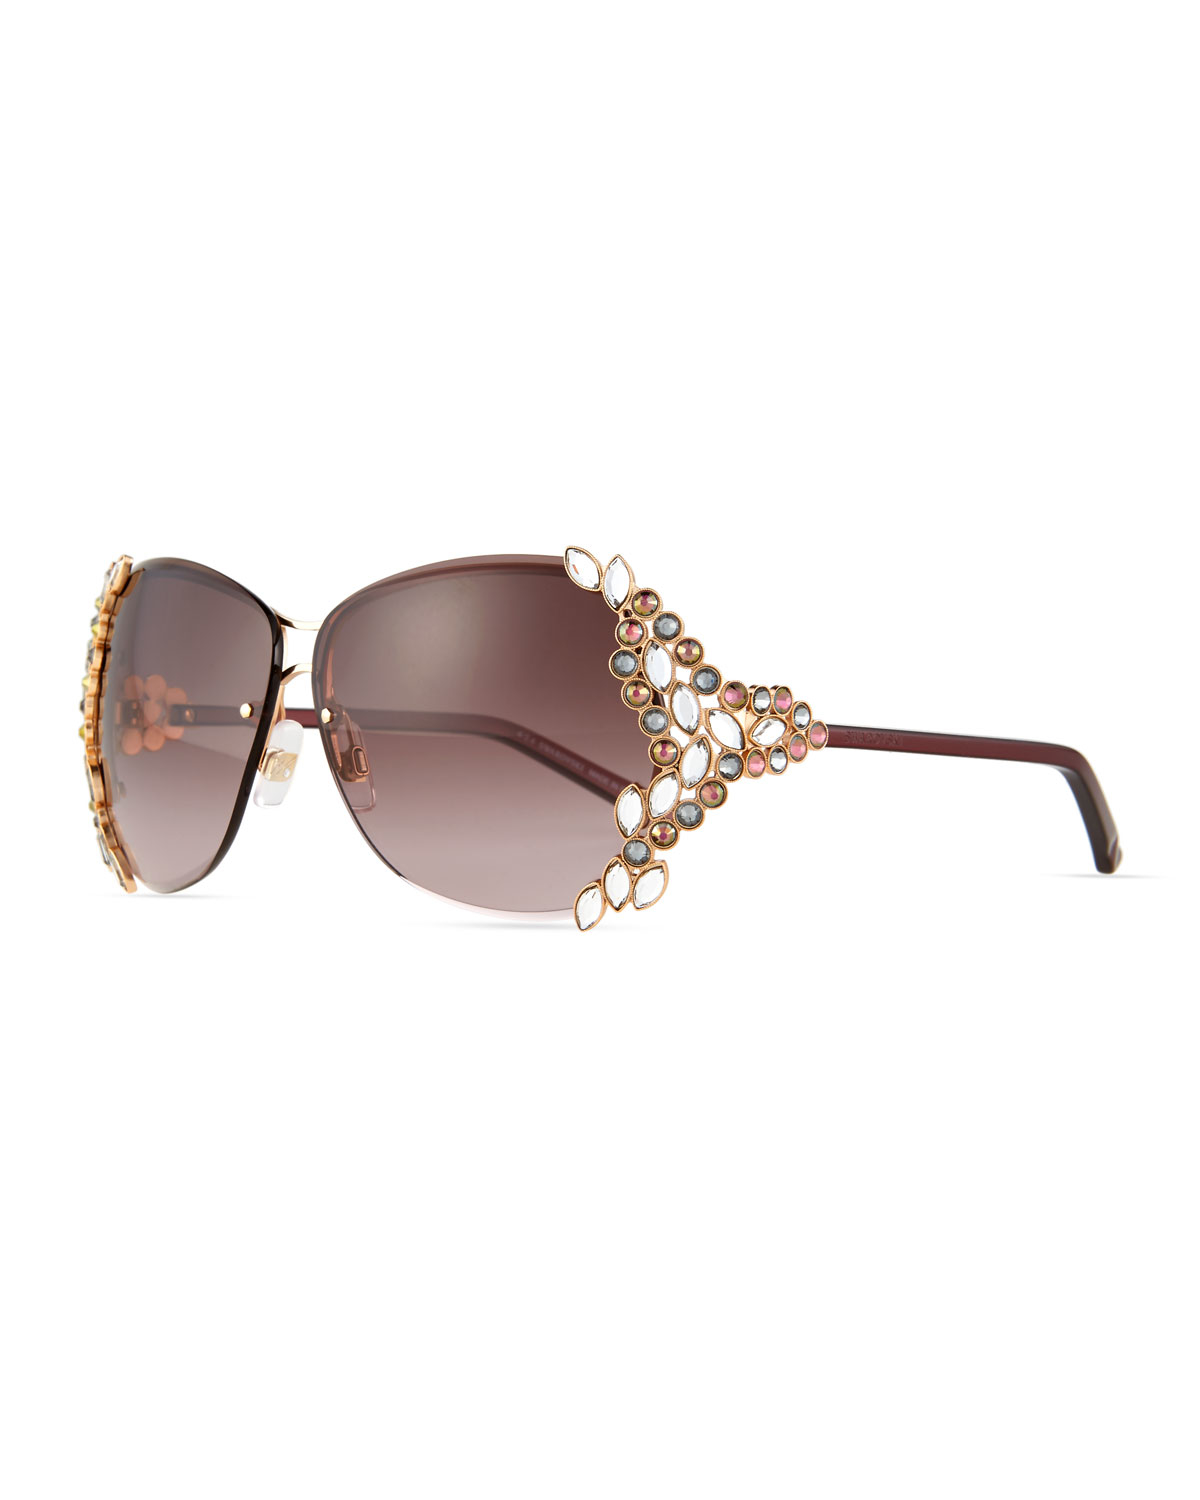 Lyst - Swarovski Special Edition ® Crystal Sunglasses in Metallic